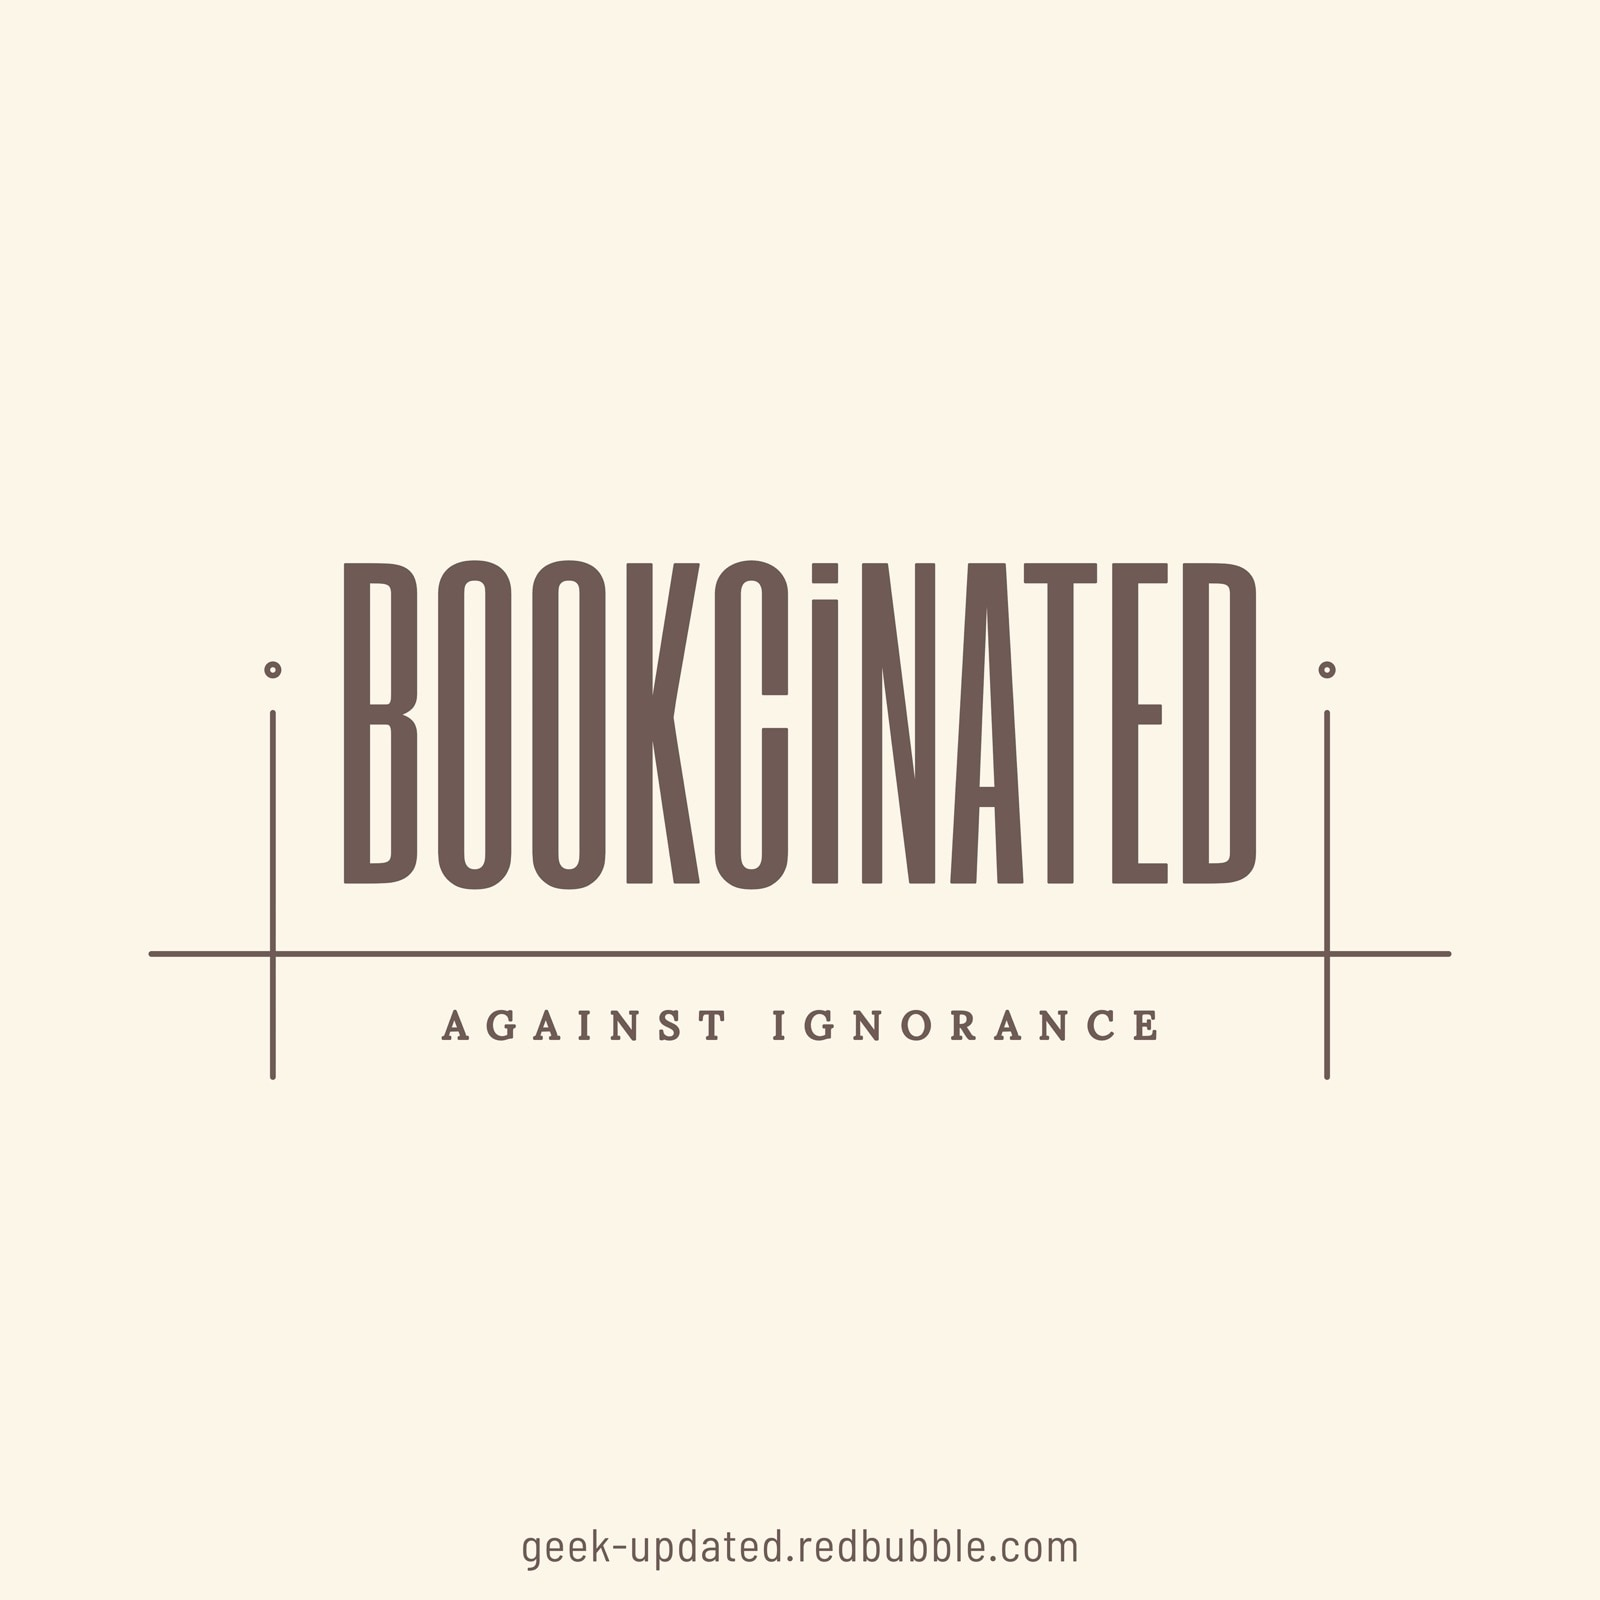 Bookcinated against ignorance - design by Piotr Kowalczyk